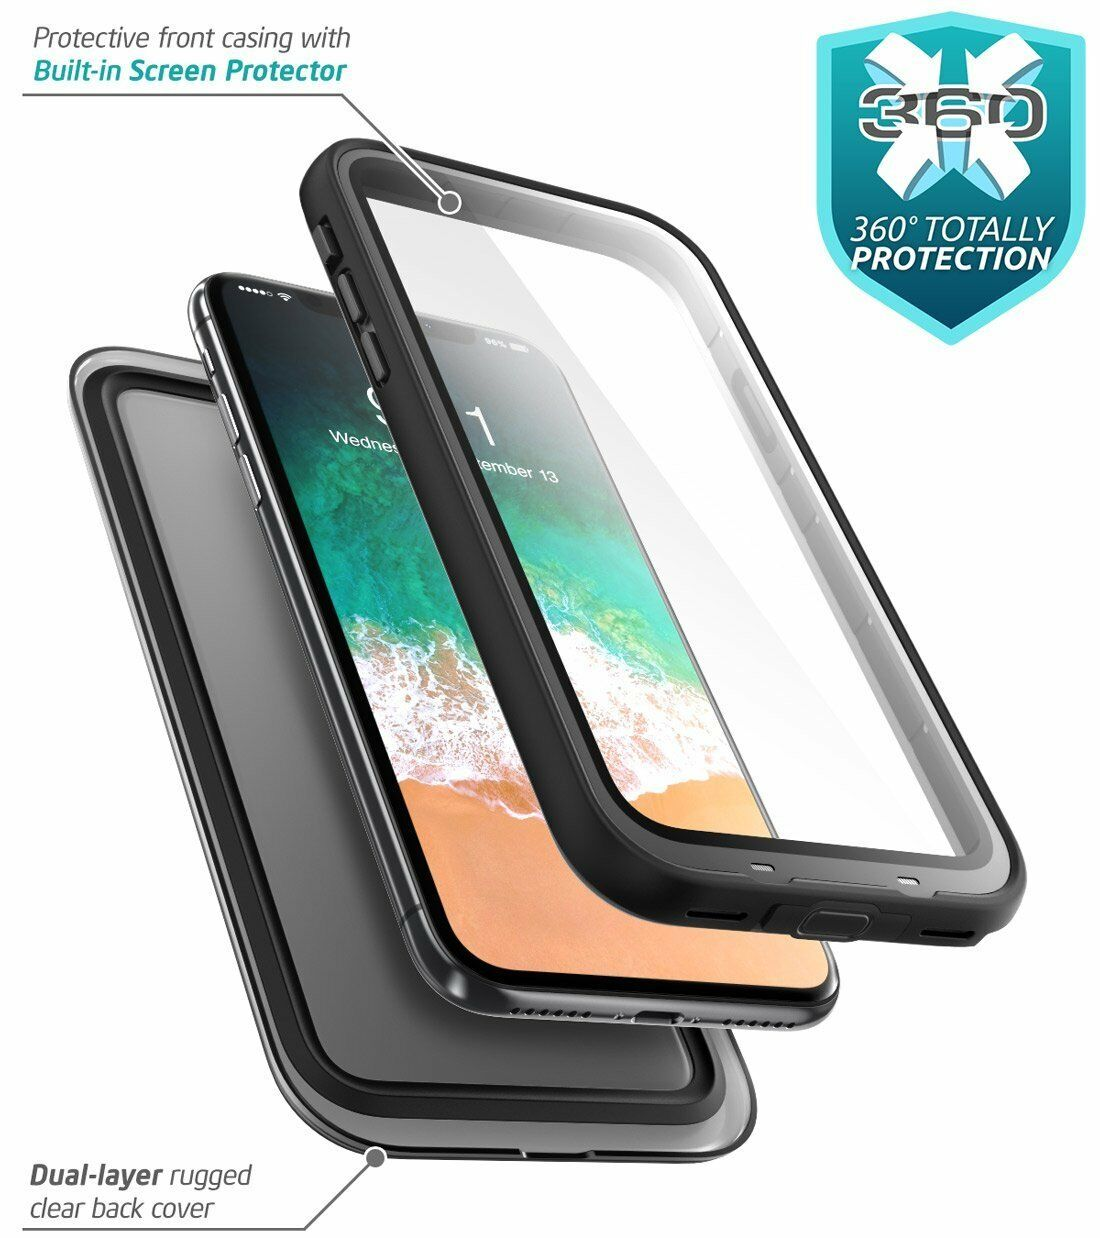 Iphone X Xs Case I Blason Aegis Waterproof Full Body Cover For Xr Spigen Protector Thin Fit 360 Free Glass Casing 3 Of 8 4